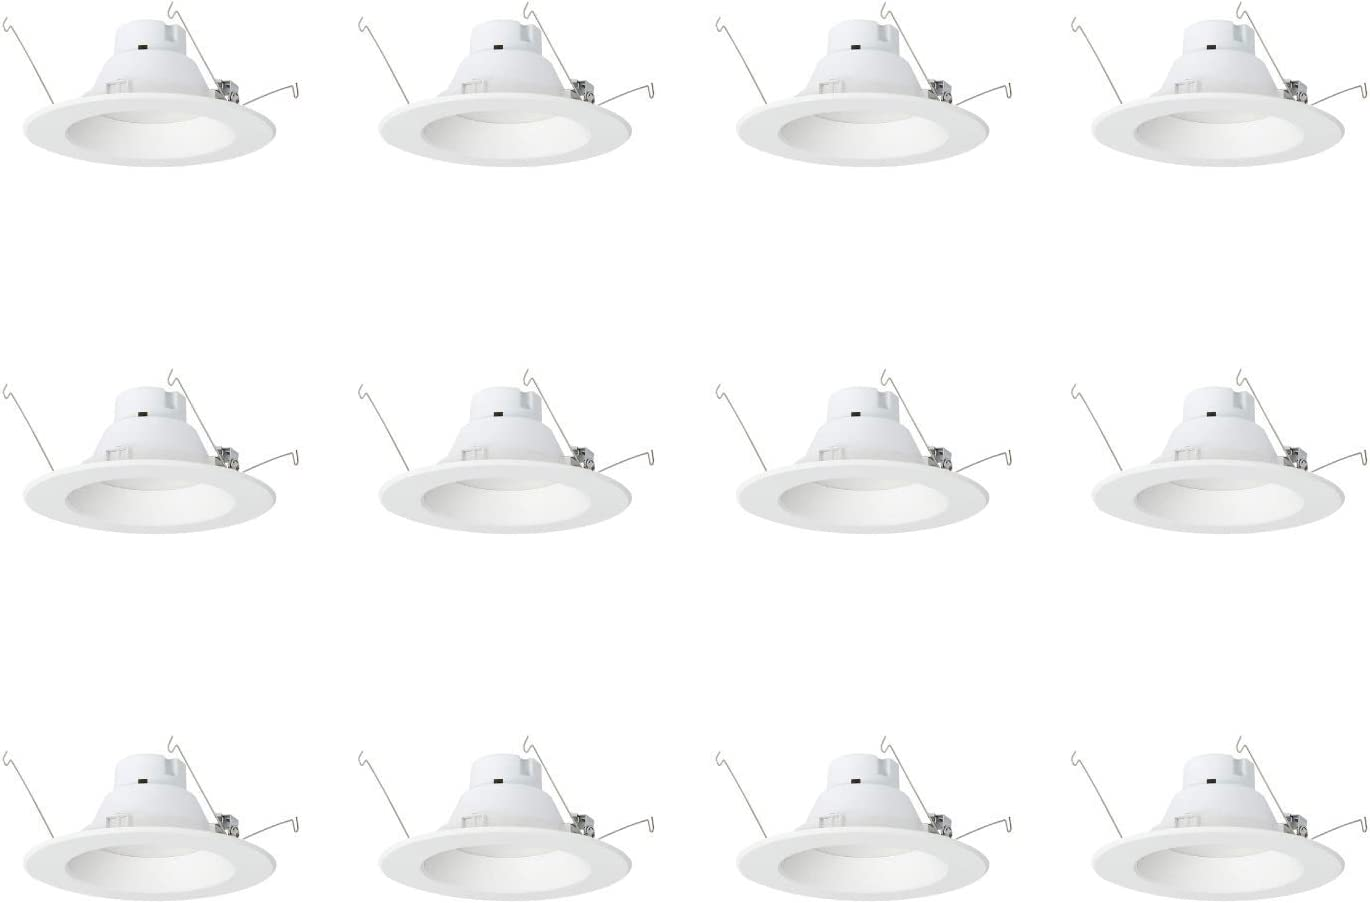 AmazonCommercial 120 Watt Equivalent, 5/6-Inch Recessed Downlight, Dimmable, CEC Compliant, Energy Star, Round LED Light Bulb | Daylight, 12-Pack